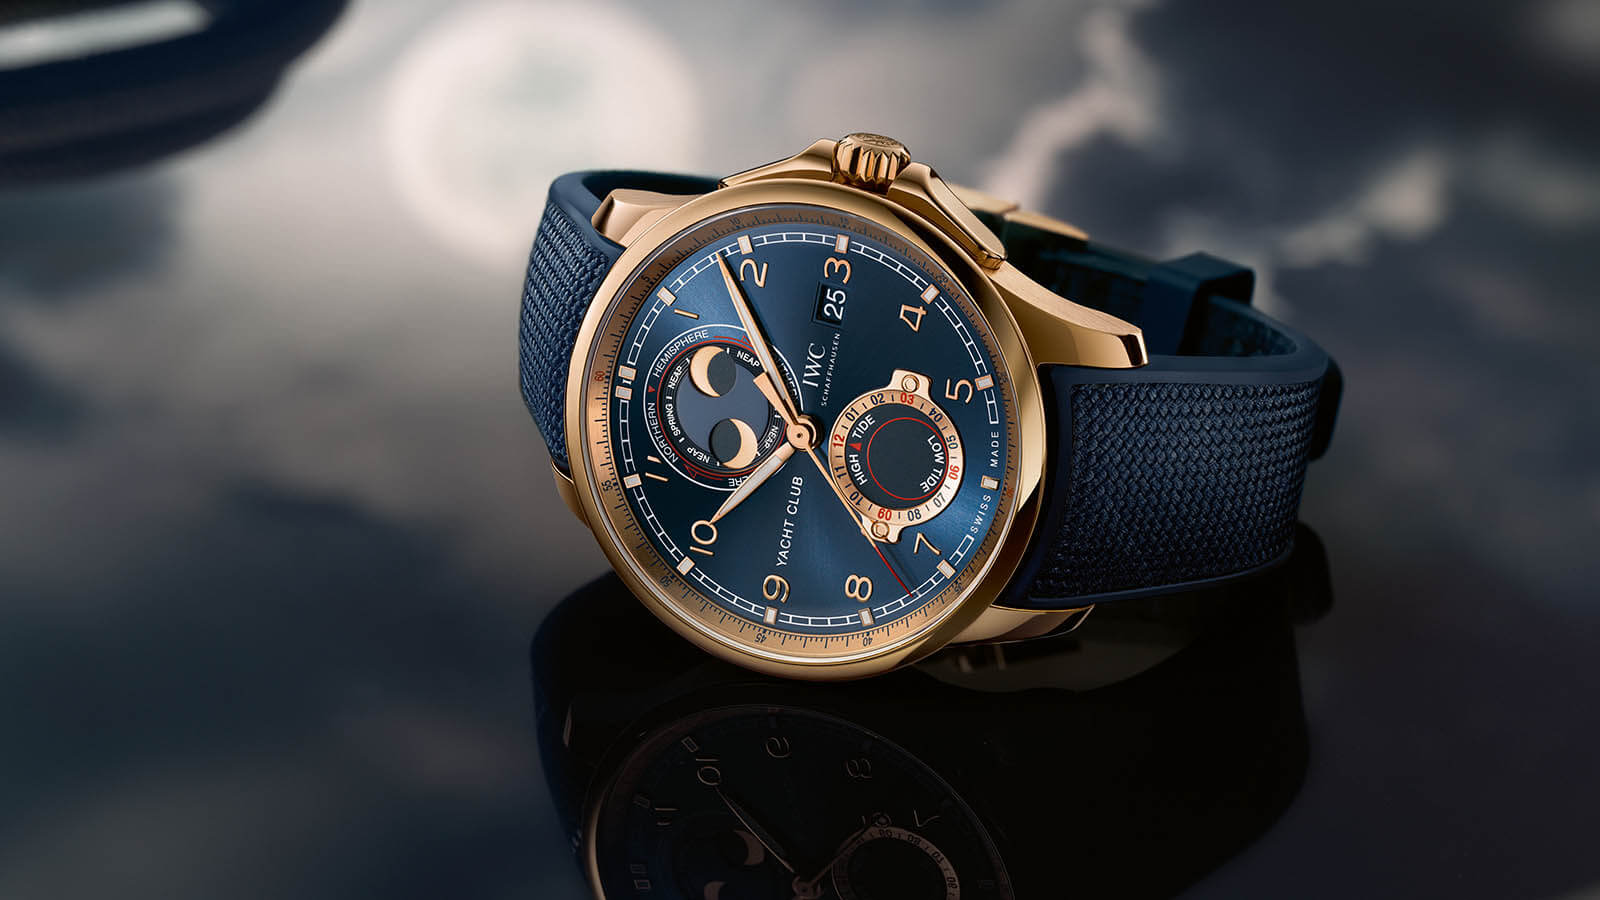 IWC SCHAFFHAUSEN Portugieser Yacht Club Moon & Tide 2020 Mood